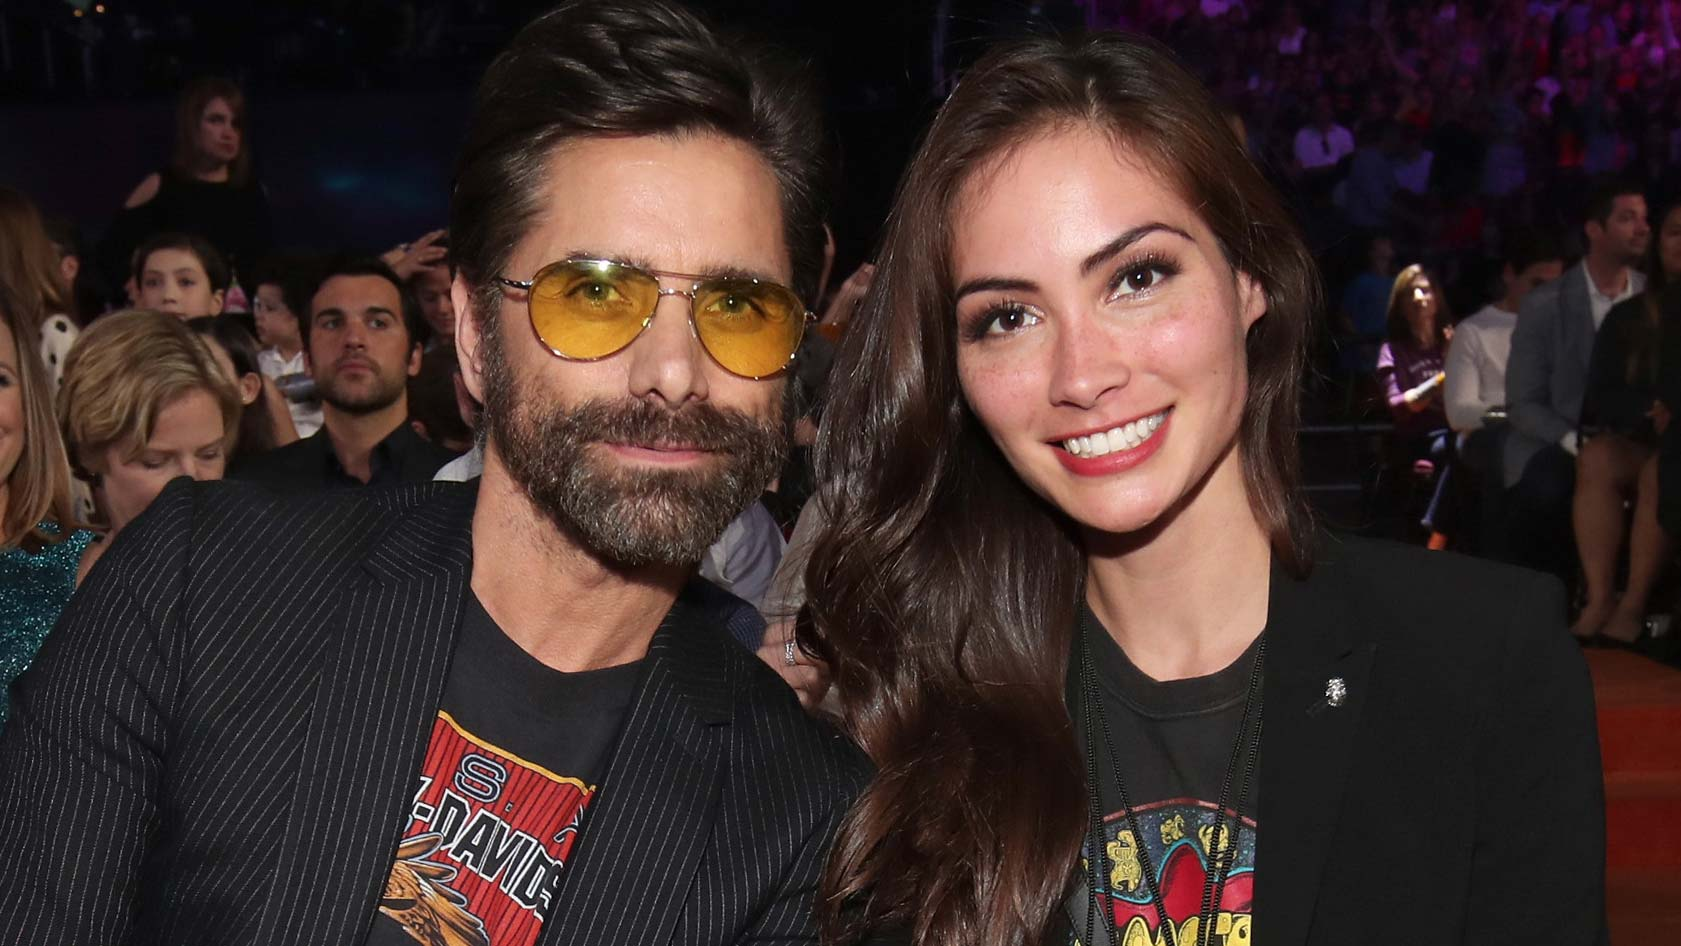 John Stamos Announces Engagement To Girlfriend Caitlin Mchugh She Said Yes Entertainment